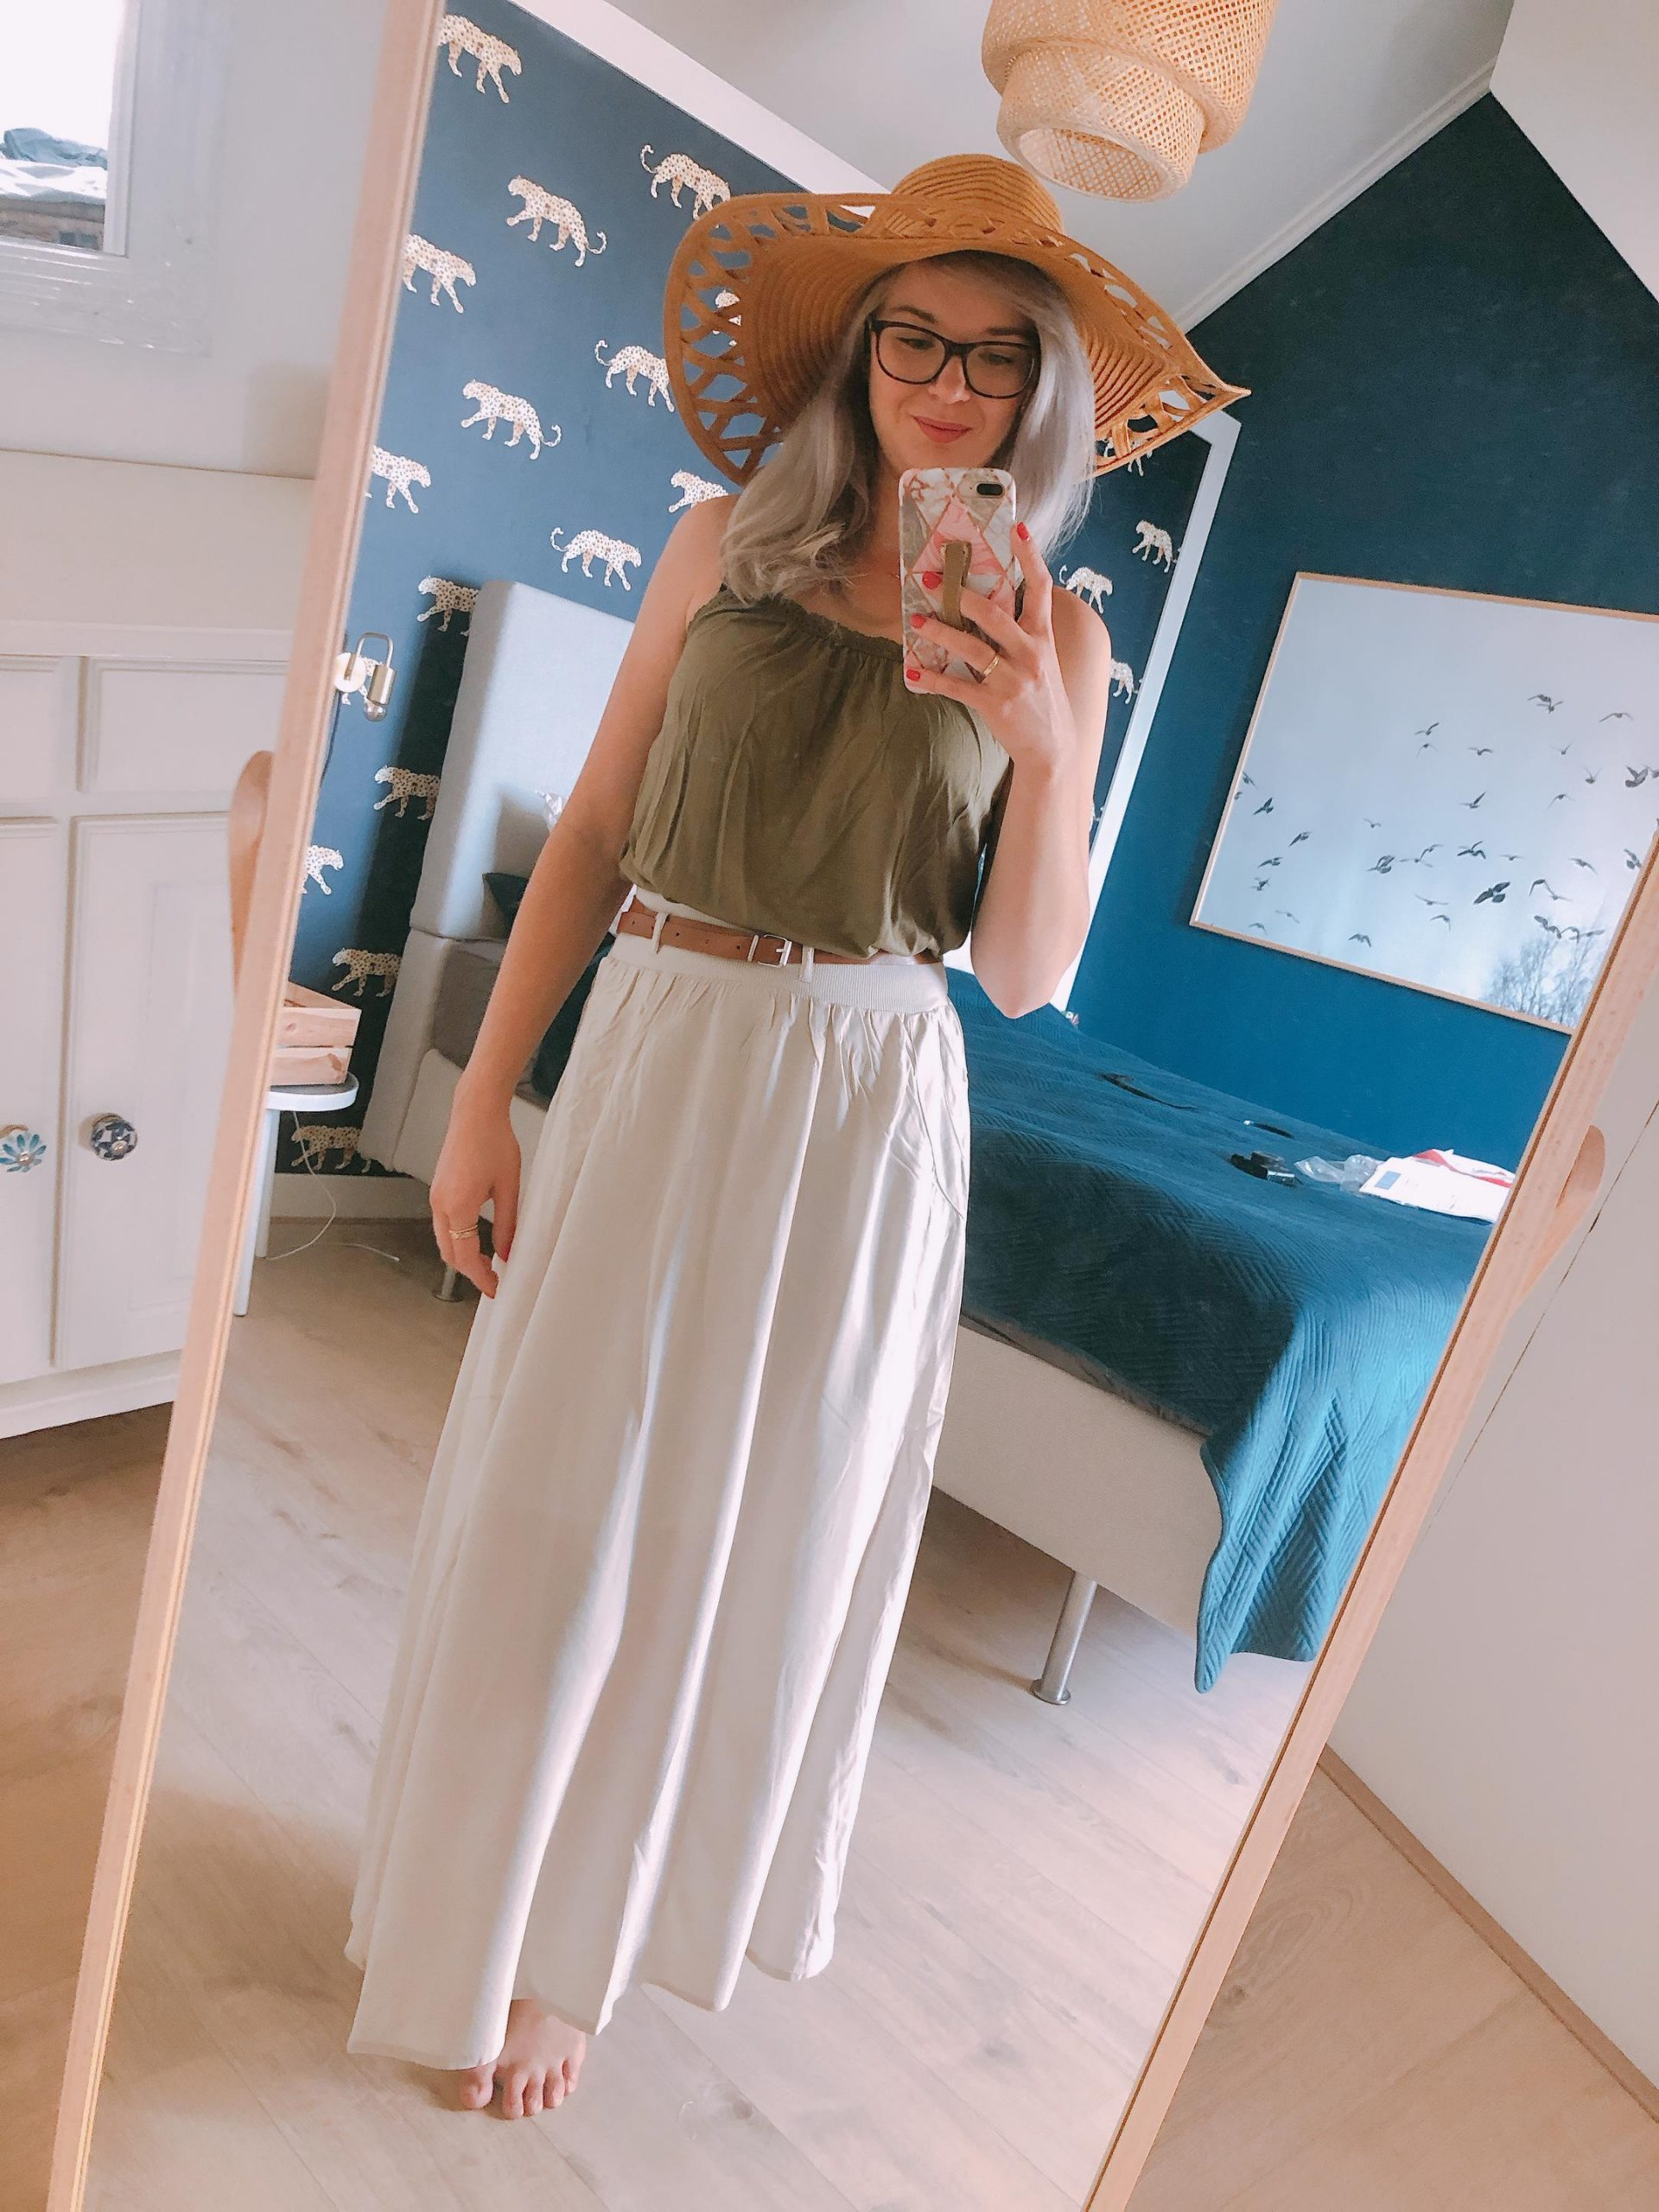 IMG 9654 2160x2880 1 scaled - 3x Zomerse Bohemien Outfits (Shoplog)!